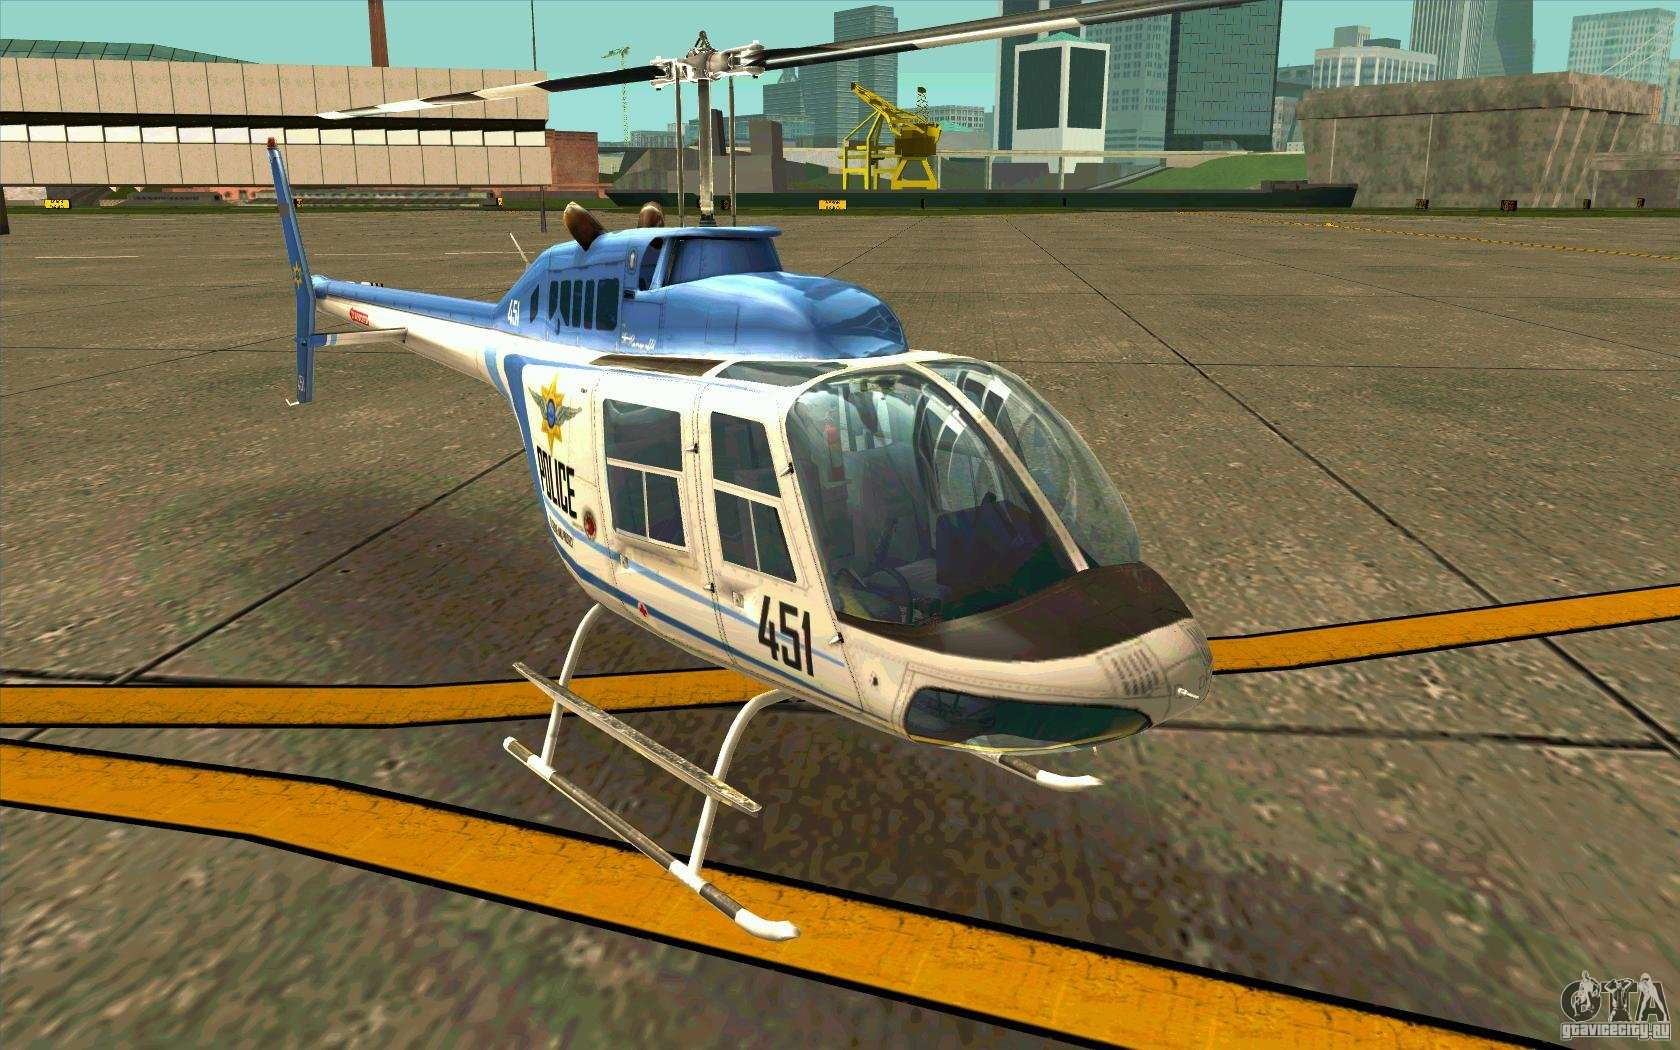 agricultural helicopter with 10740 Bell 206 B Police Texture1 on Red Tractor Icon 1774 also 42811 Mh 6 Little Bird moreover 67052 Ah 6j Little Bird likewise Build Your Own Helicopter in addition 59404 Savage Gta 5 V12.